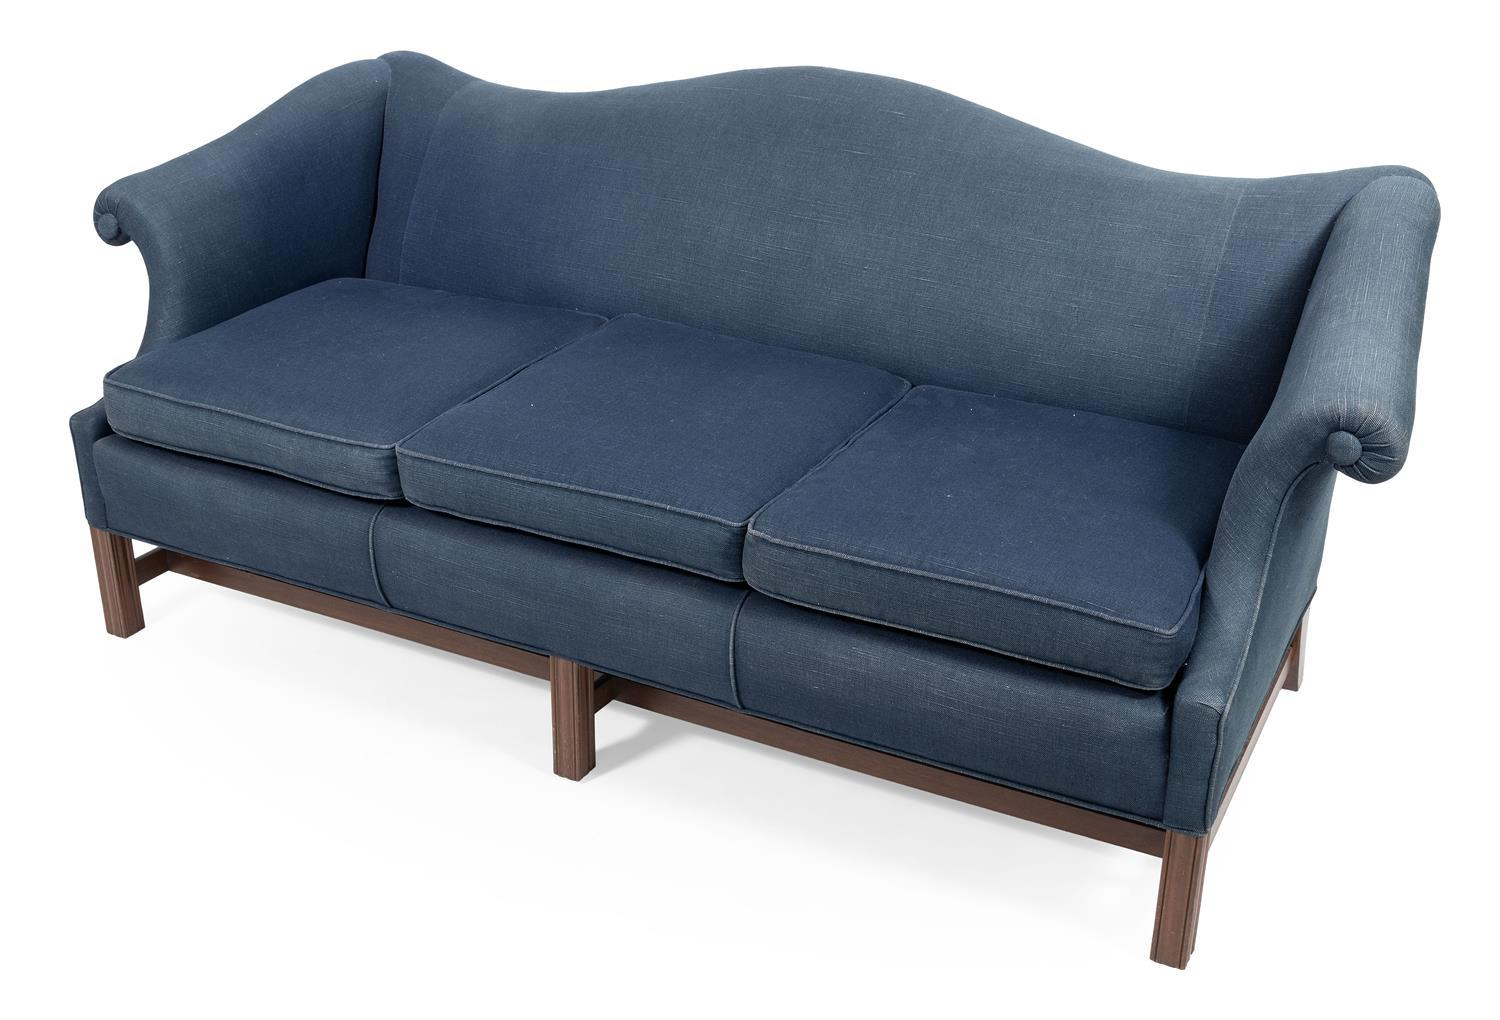 """CHIPPENDALE-STYLE CAMELBACK LOVE SEAT Blue upholstery. Back height 32.5"""". Seat height 16"""". Width 72"""". Depth 33""""."""